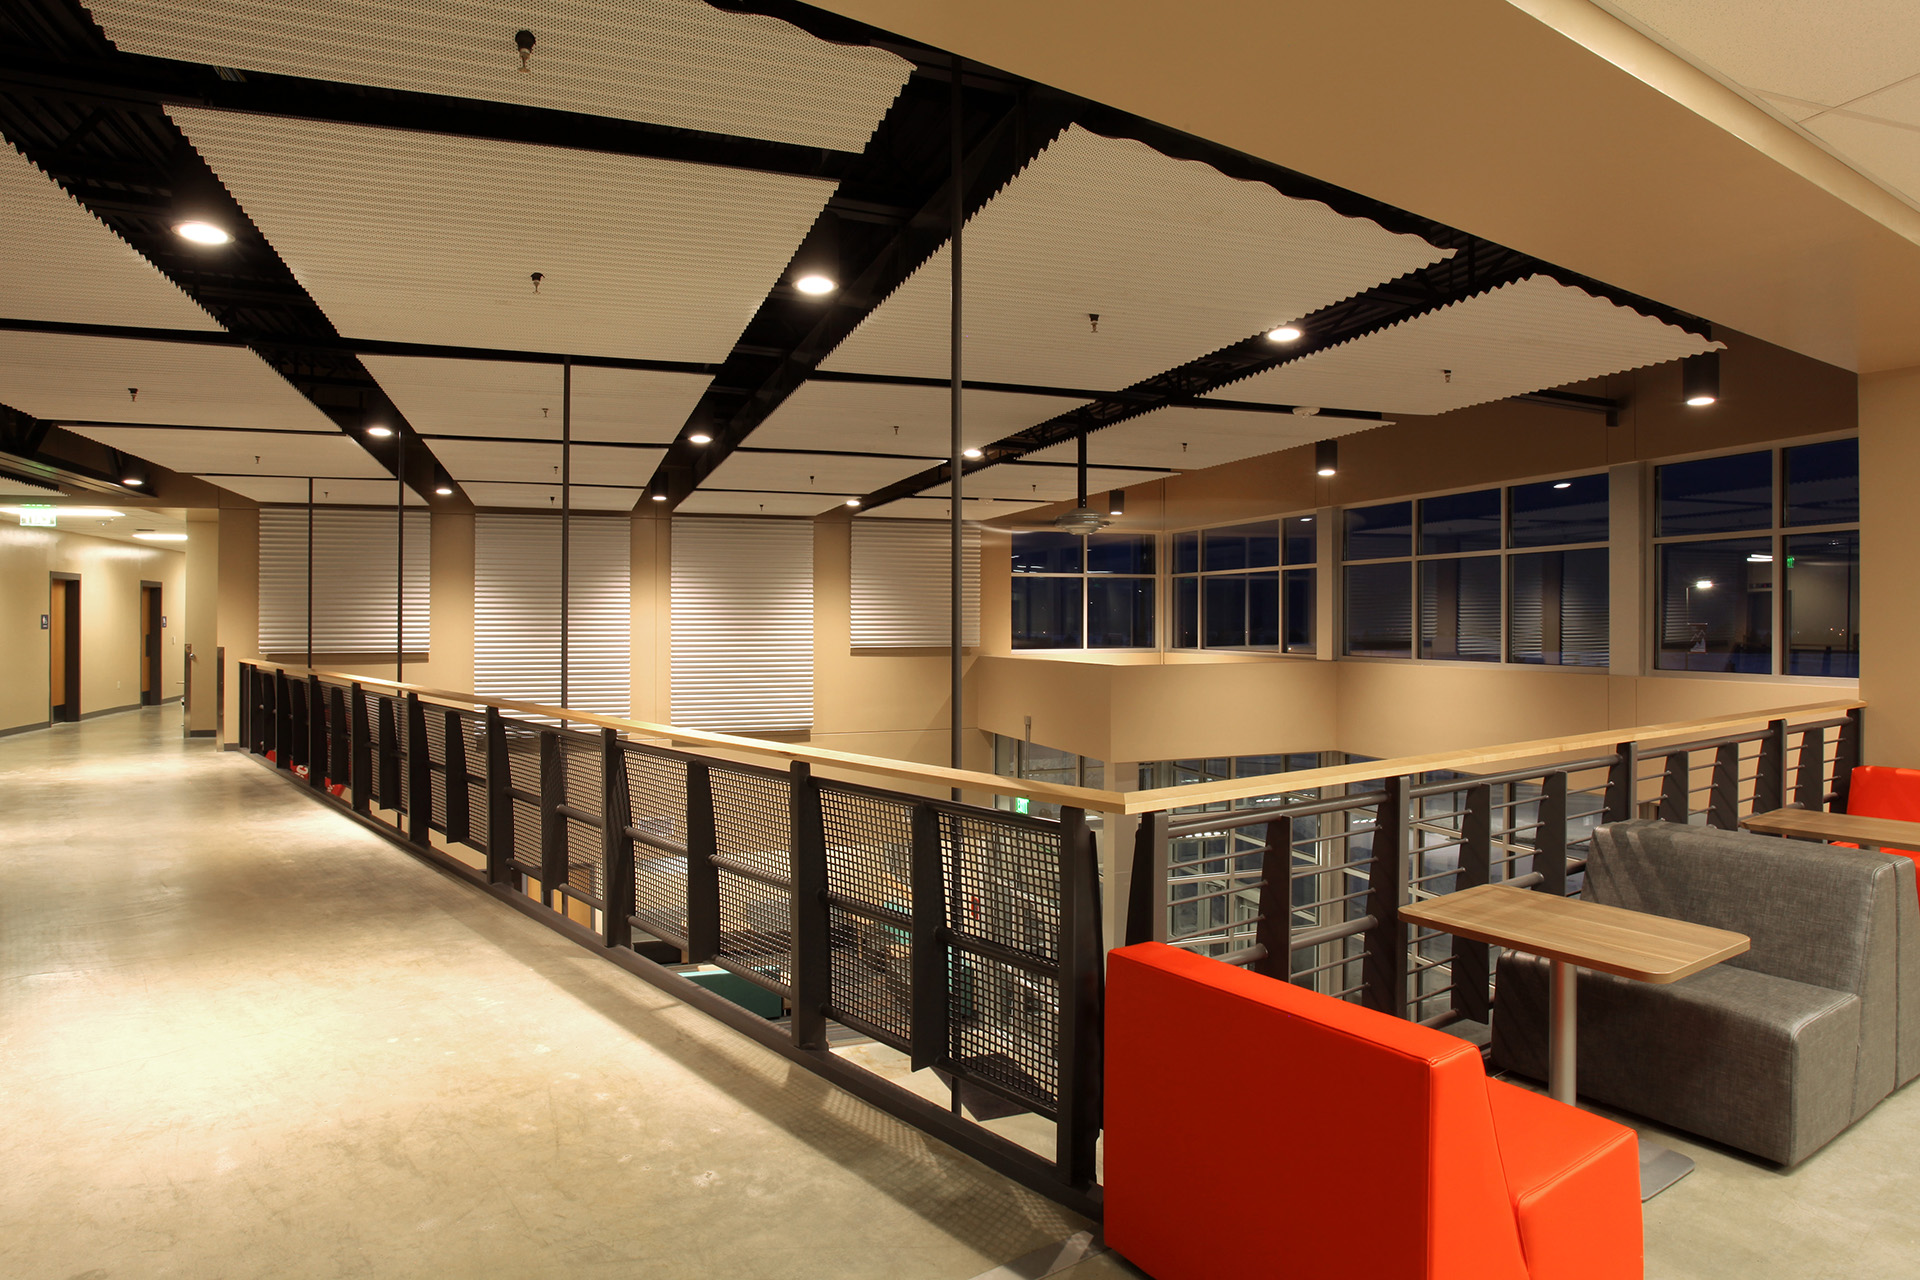 North Idaho College Parker Technical Education Center Seating